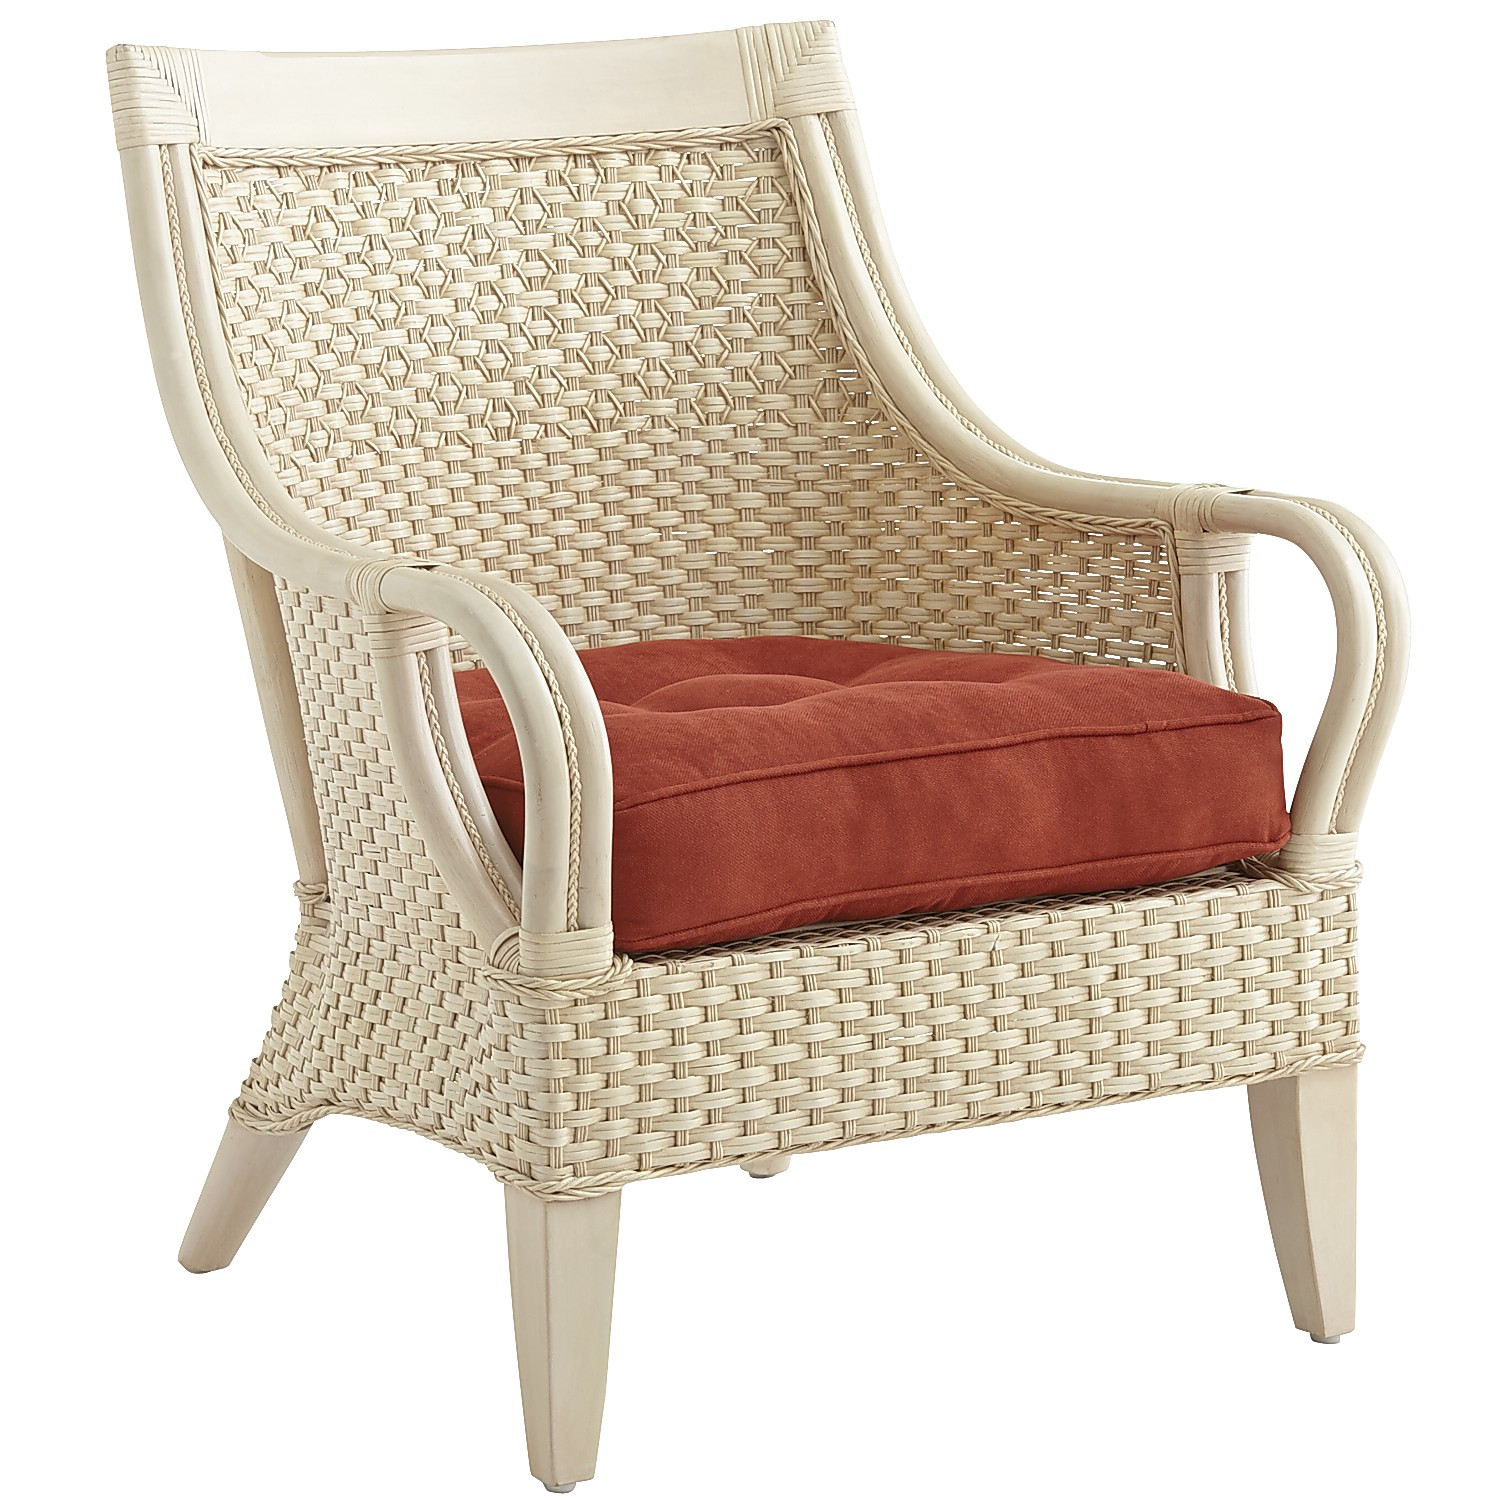 Pier 1 imports recalls temani wicker furniture due to for What is wicker furniture